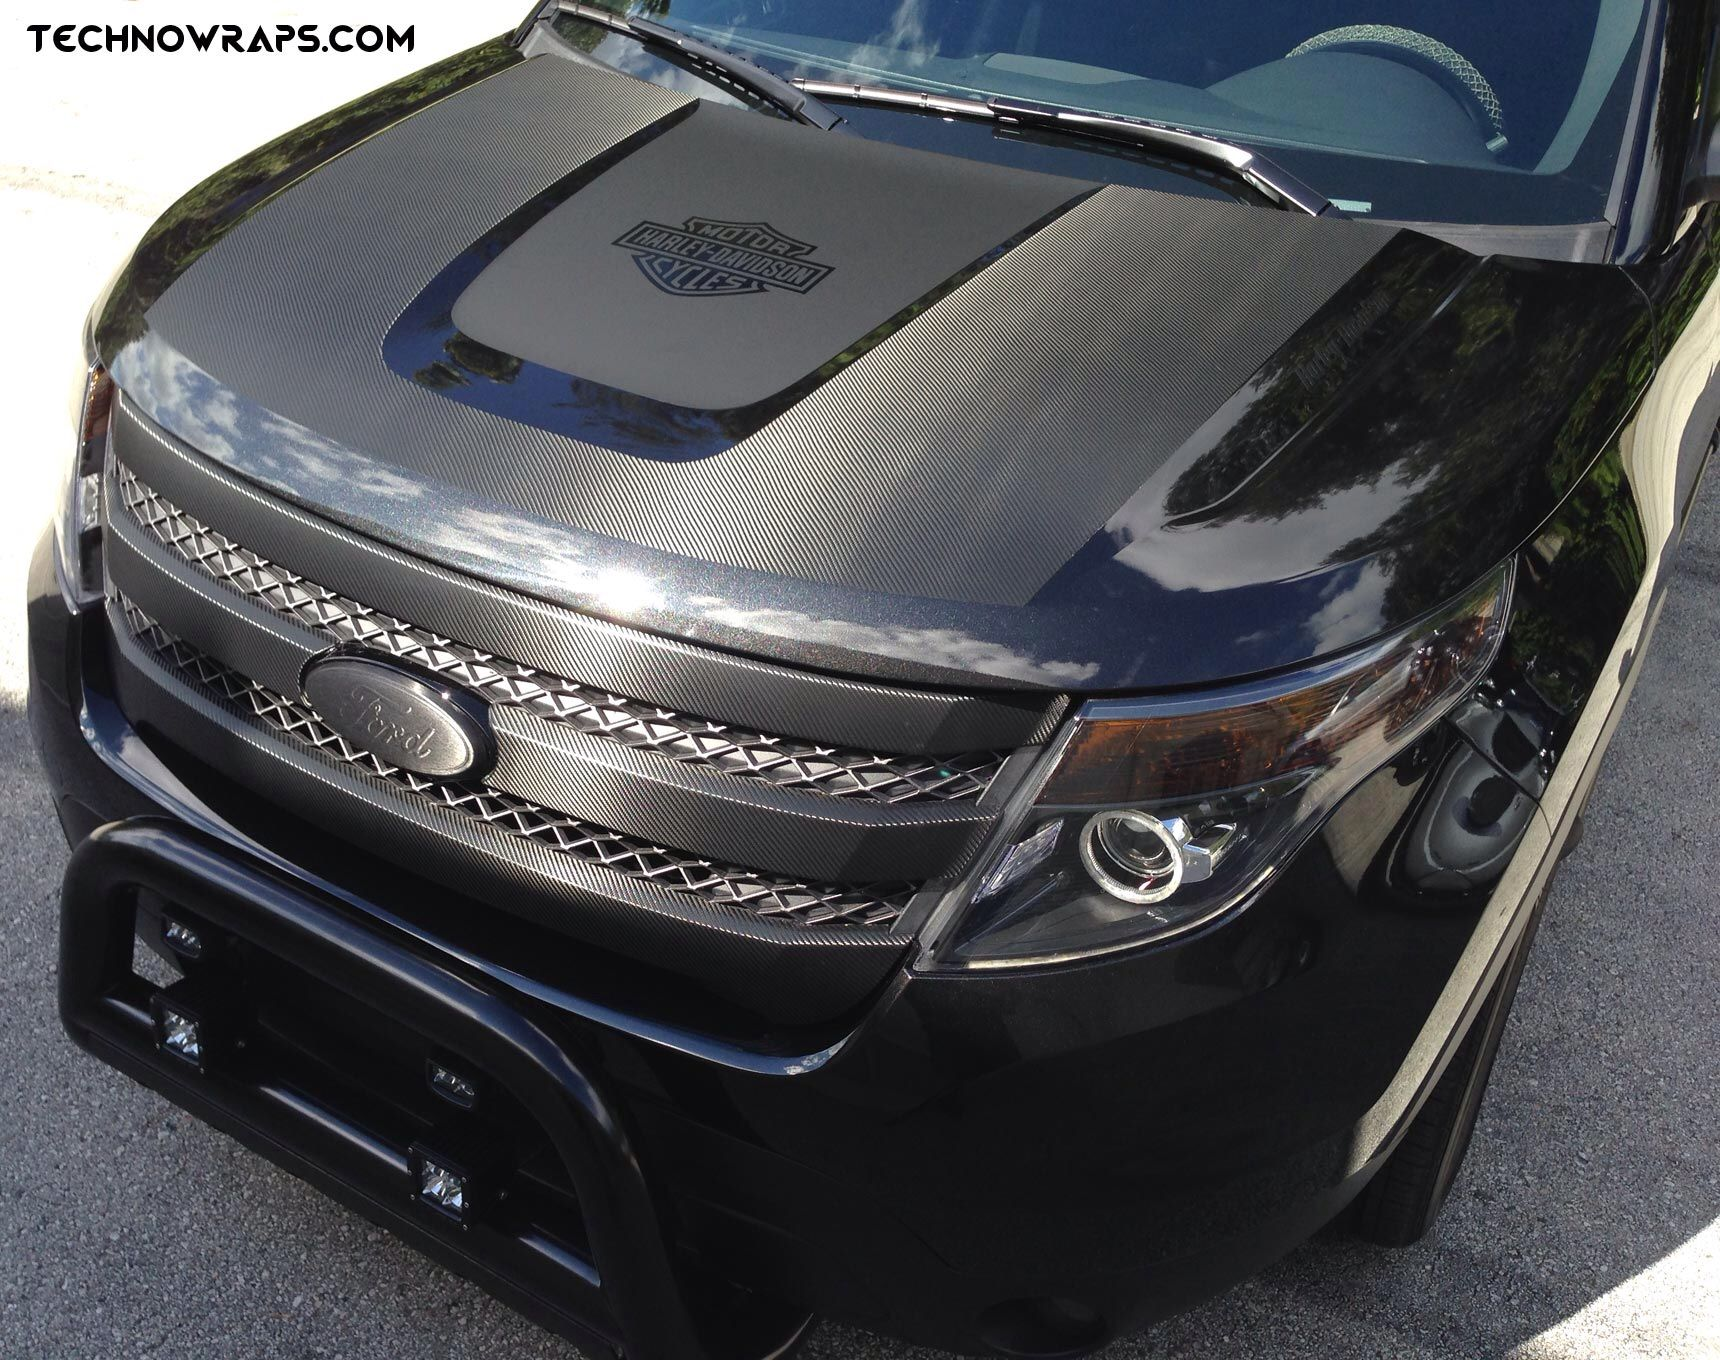 3m series 1080 black carbon fiber and matte hood wrap on ford explorer installed by